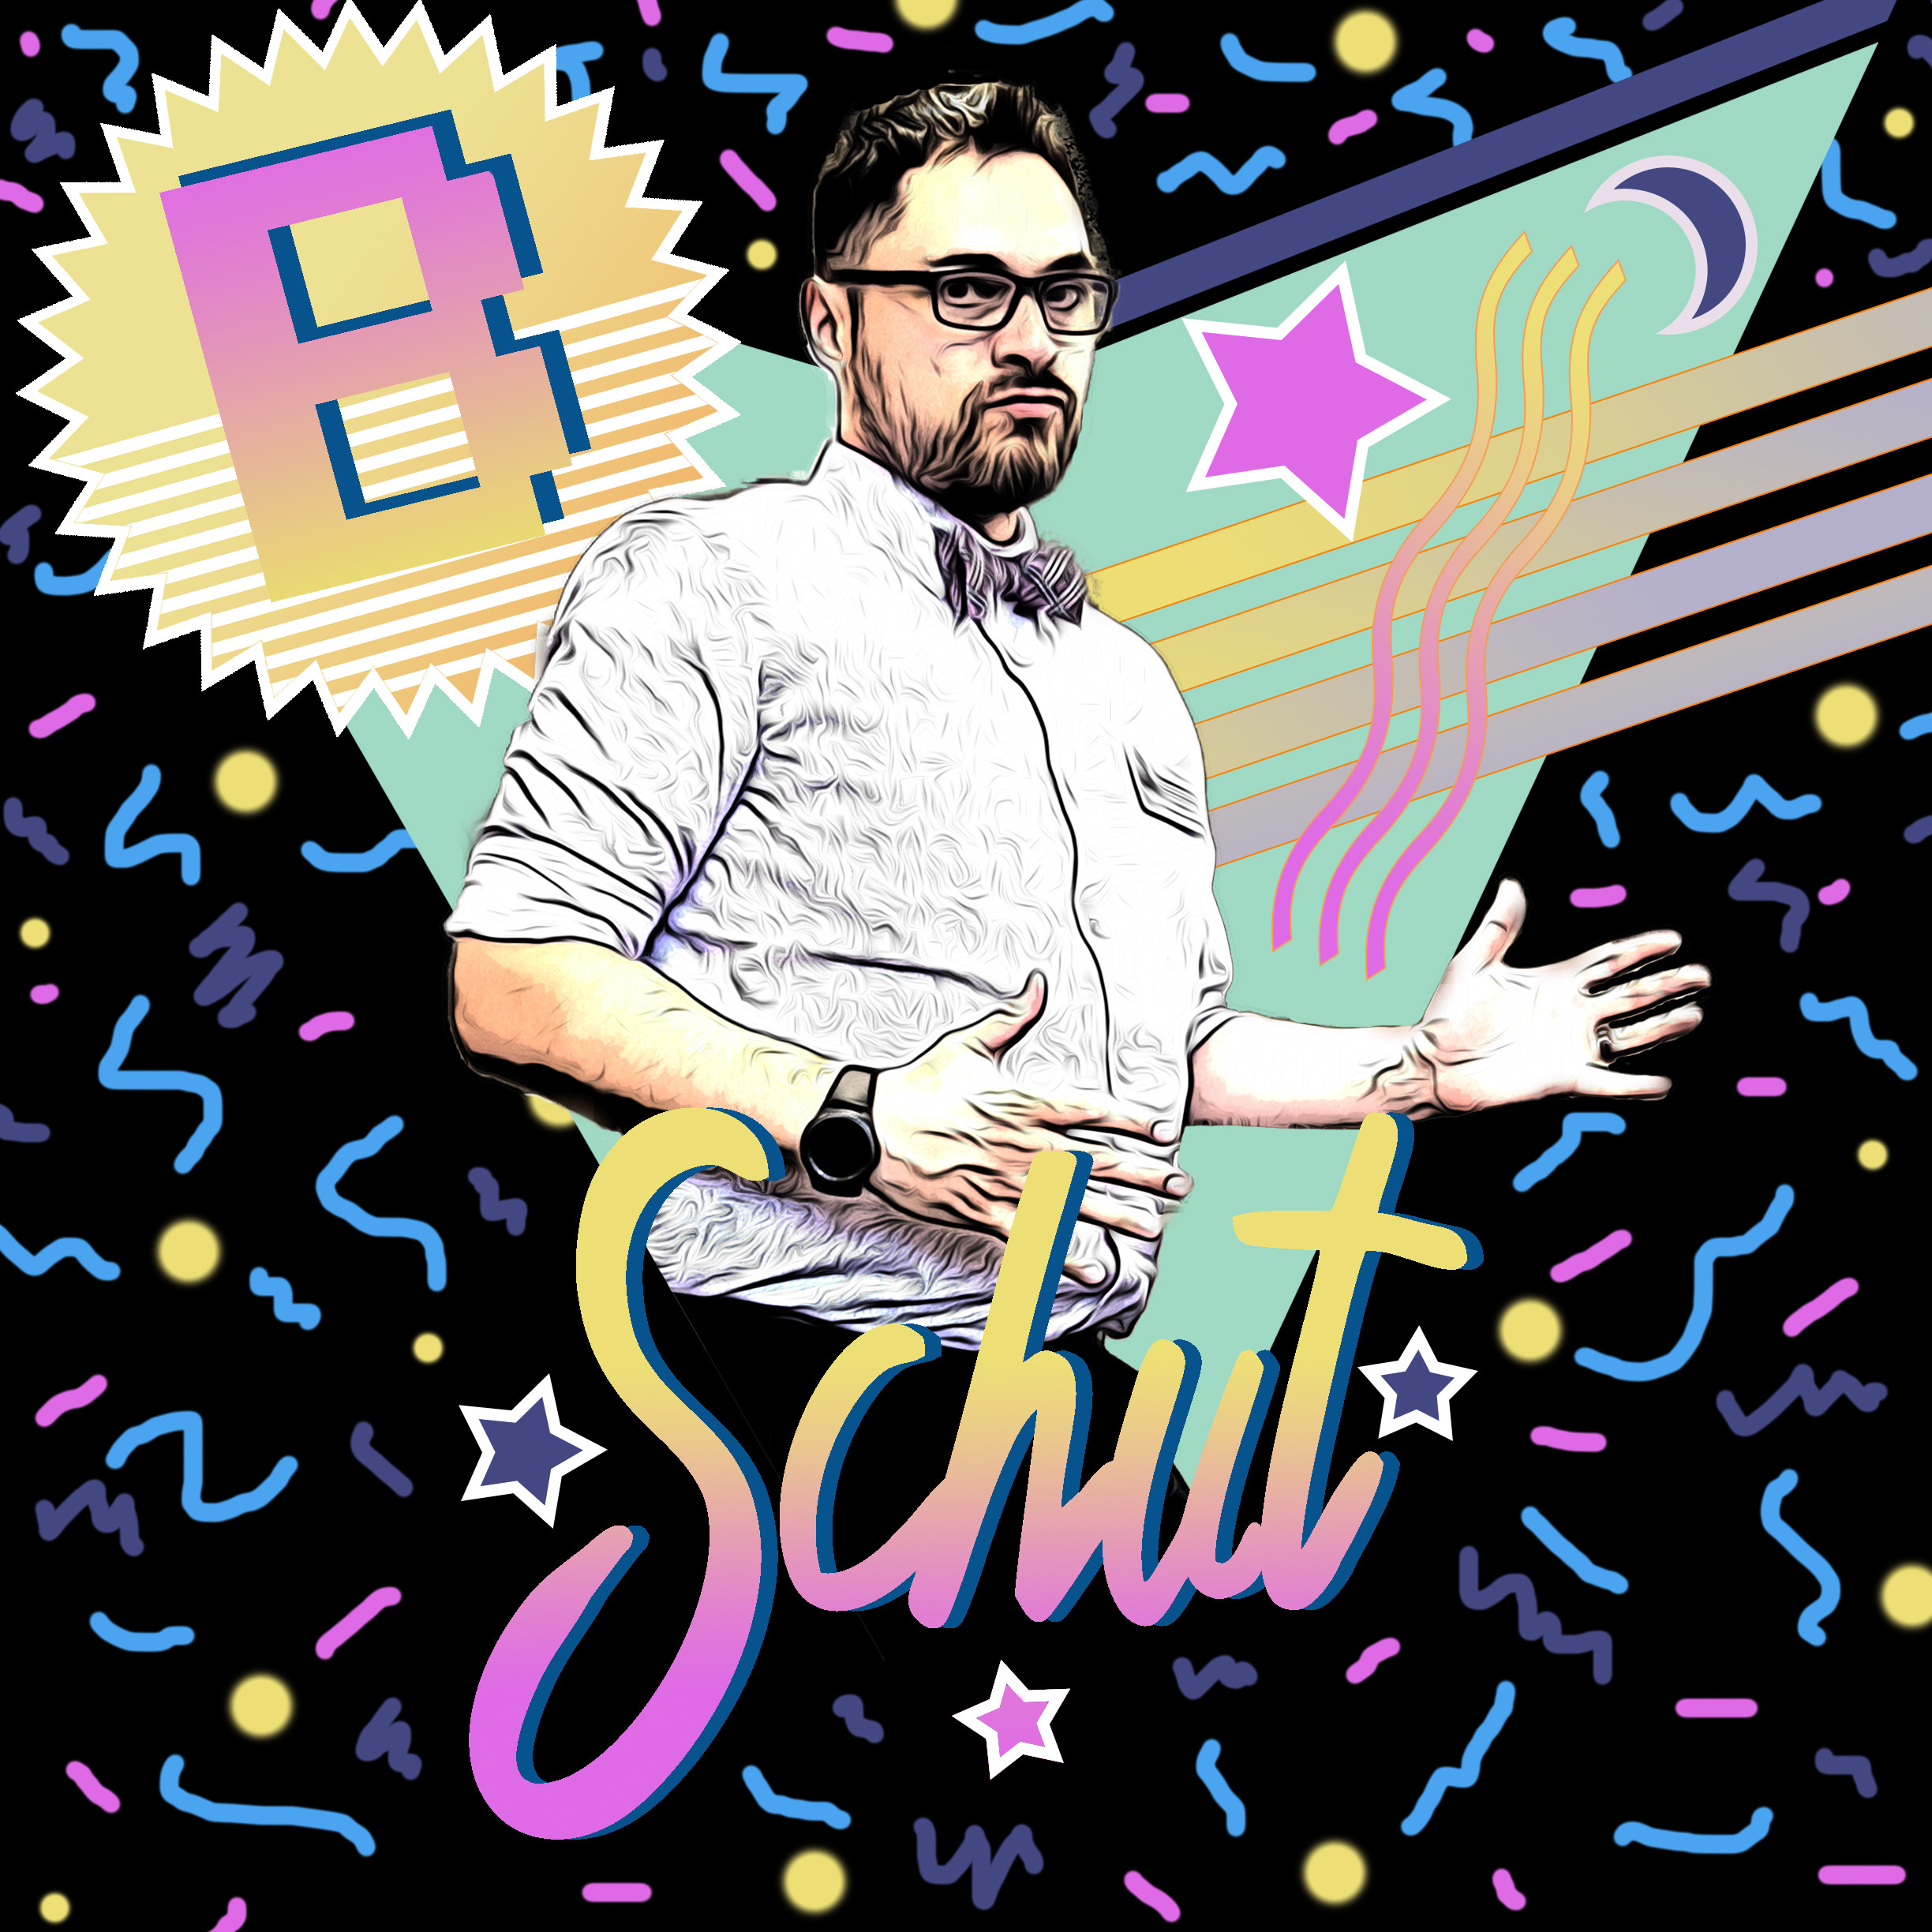 head shot of the amazing Brandon Matthew Schut III Esquire DDS MD PhD, posing with an 80s style background, confetti and neon colors